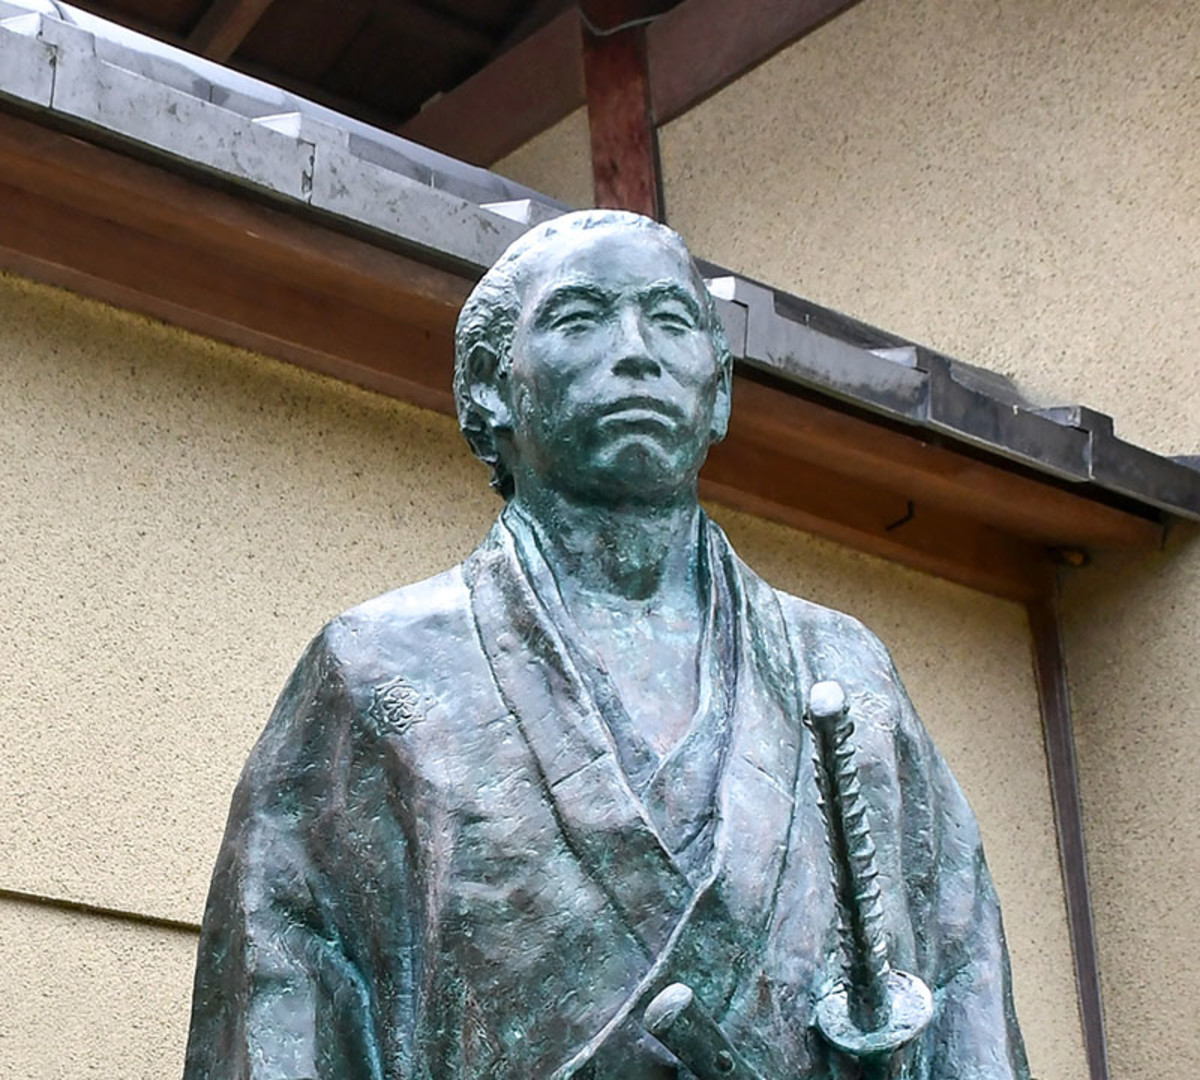 Statue of Sakamoto Ryōma at the outskirts of Kyoto City.